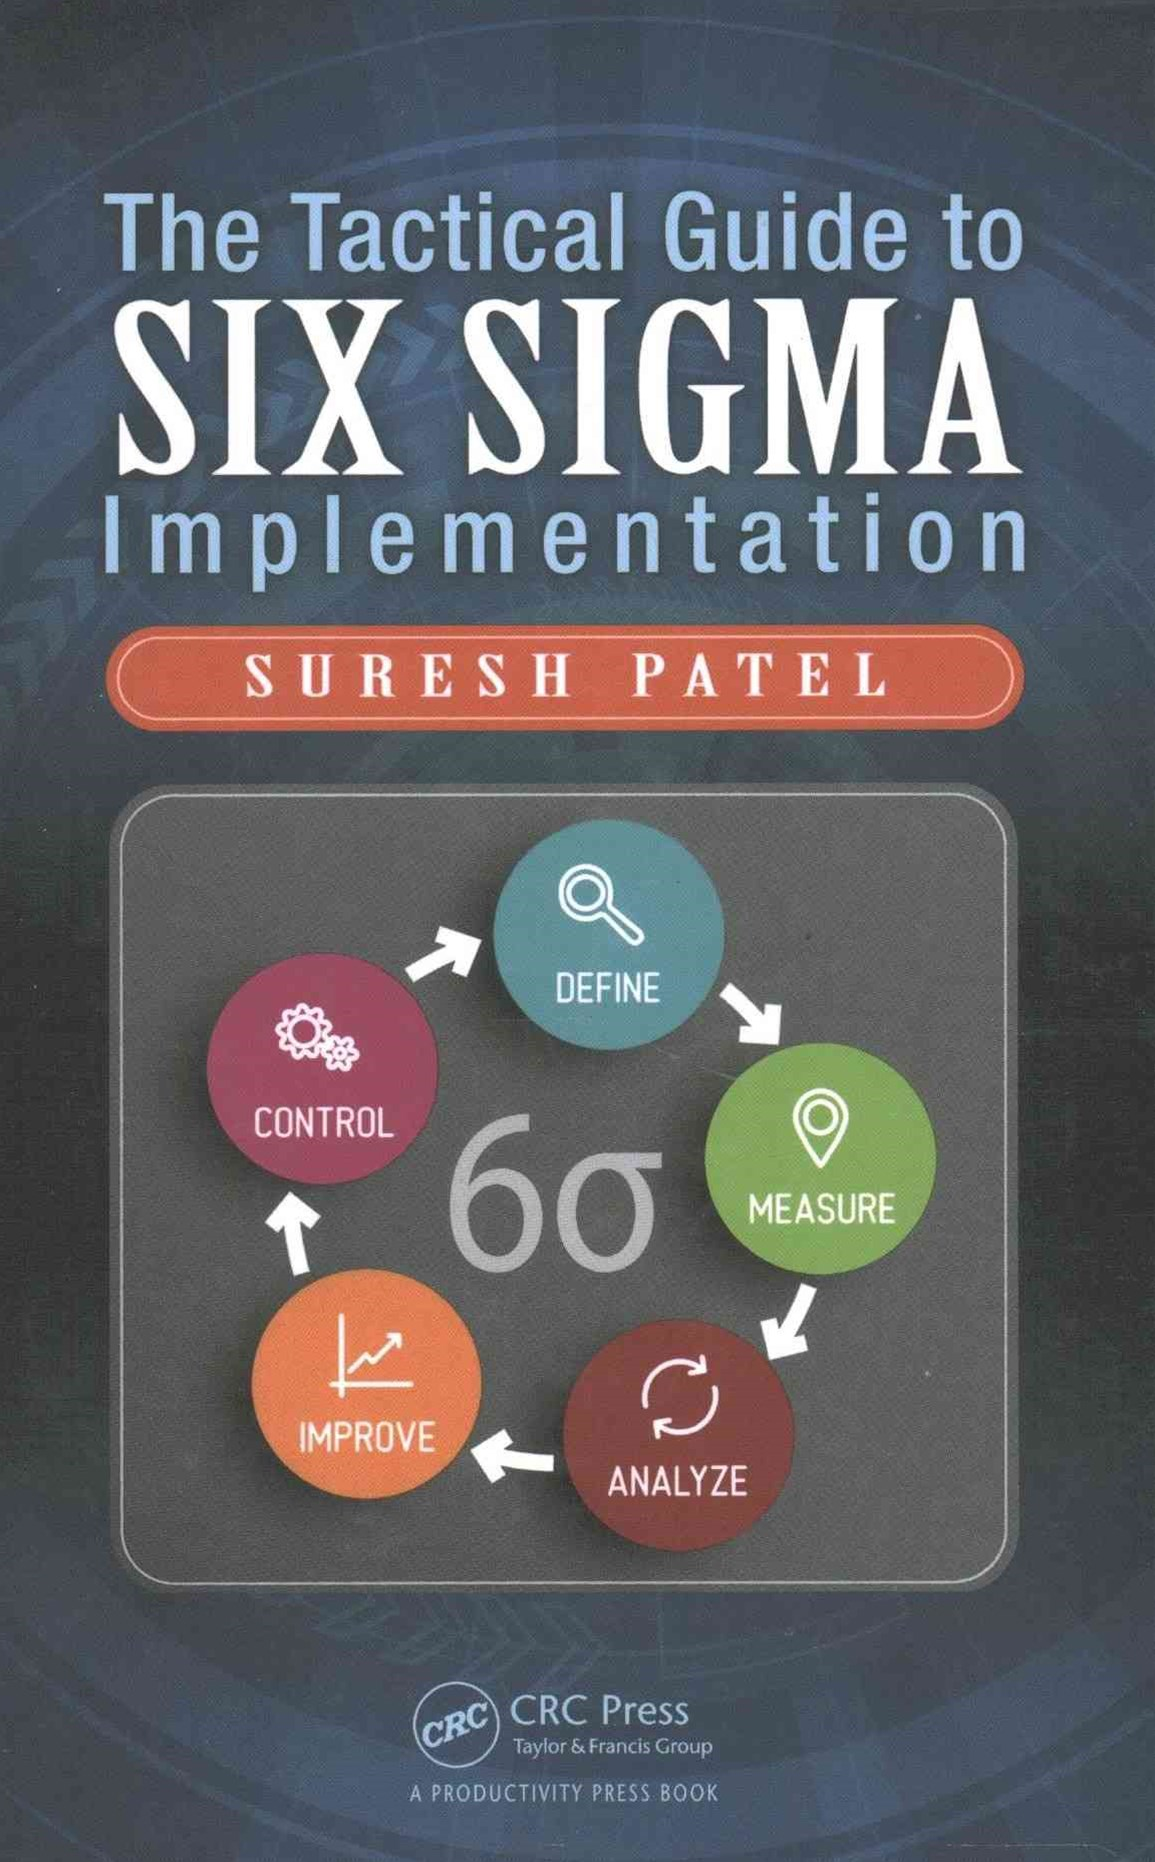 Tactical Guide to Six Sigma Implementation